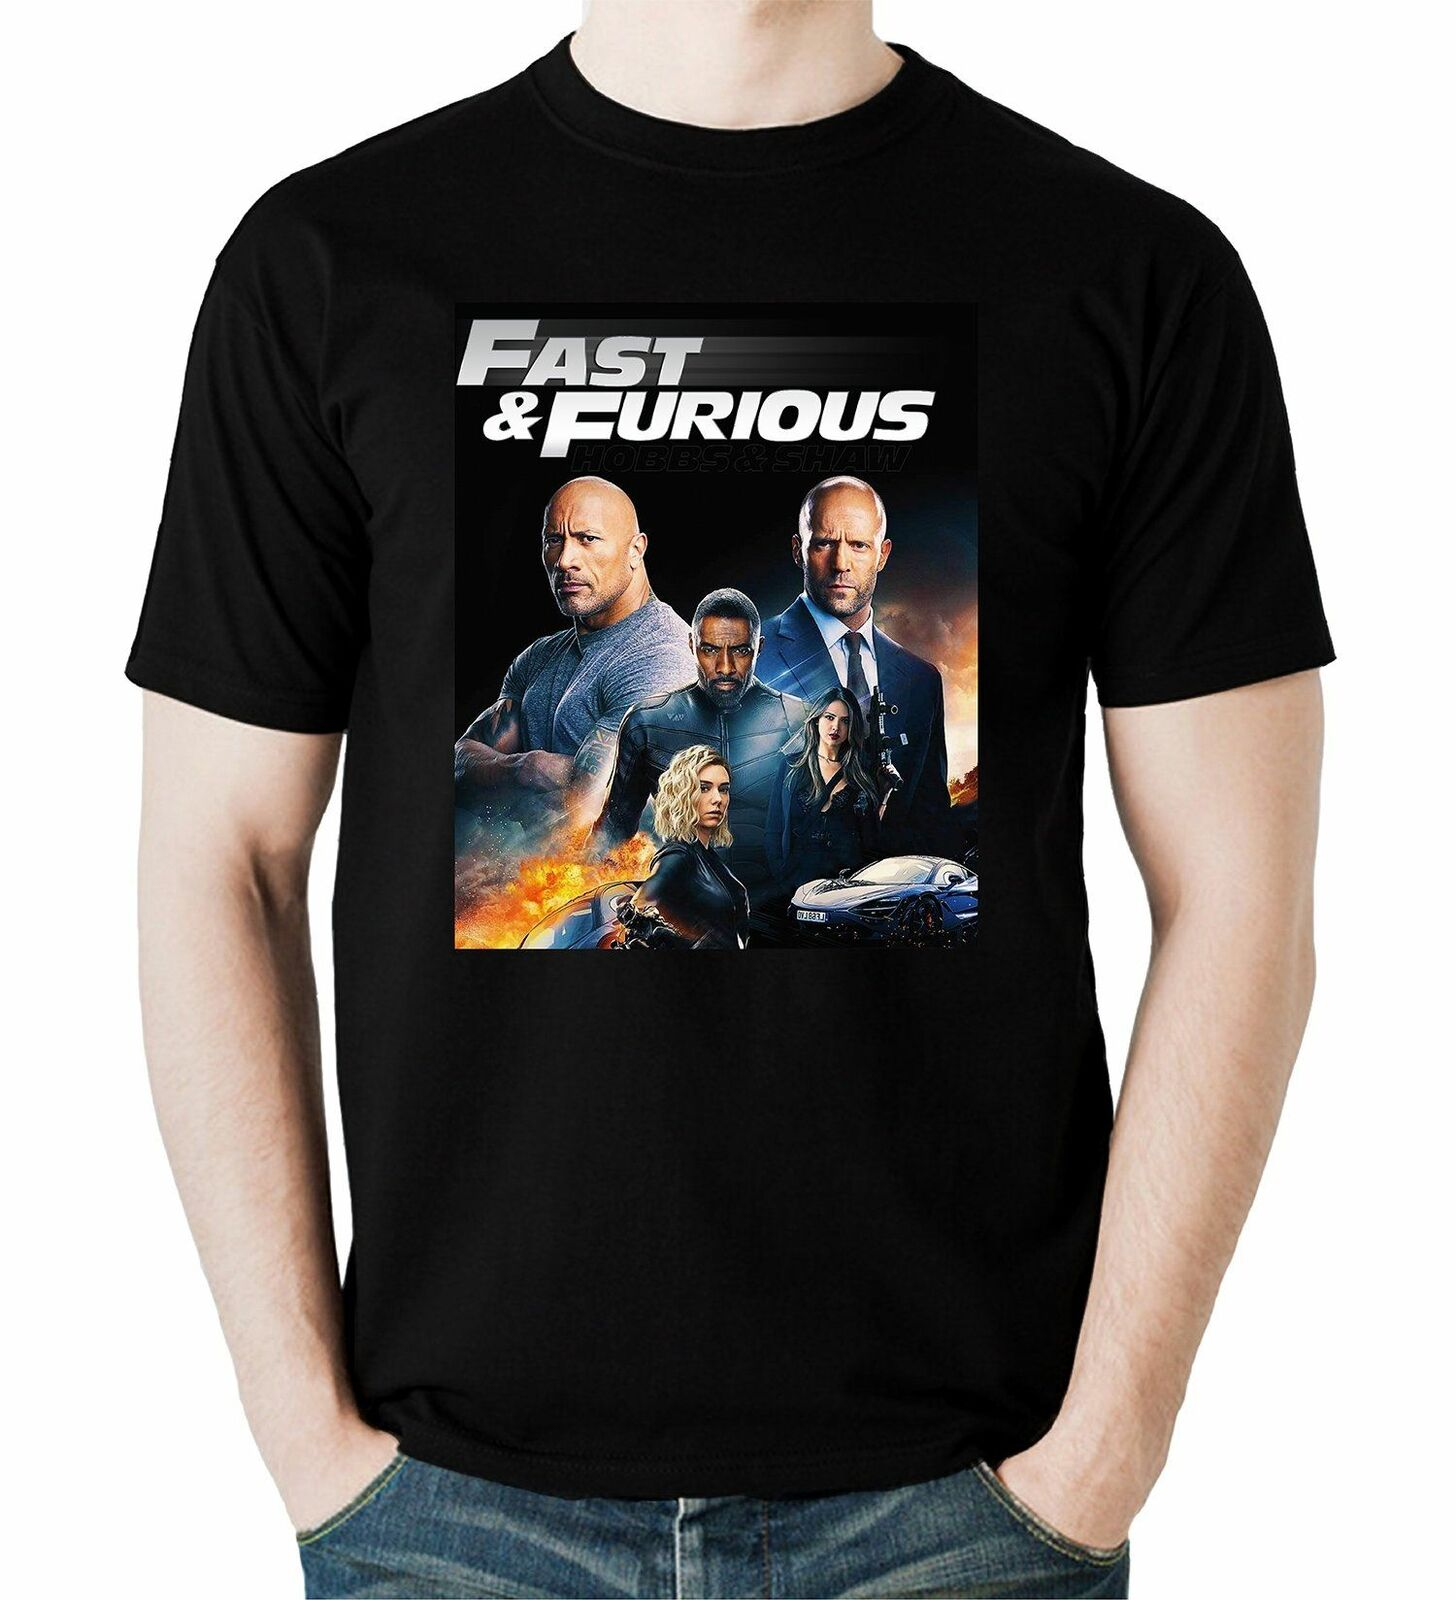 Fast & Furious Hobbs & Shaw T-Shirt Racing Sport Action Movie Men Black T-Shirt Shirts Homme Novelty T shirt Men image